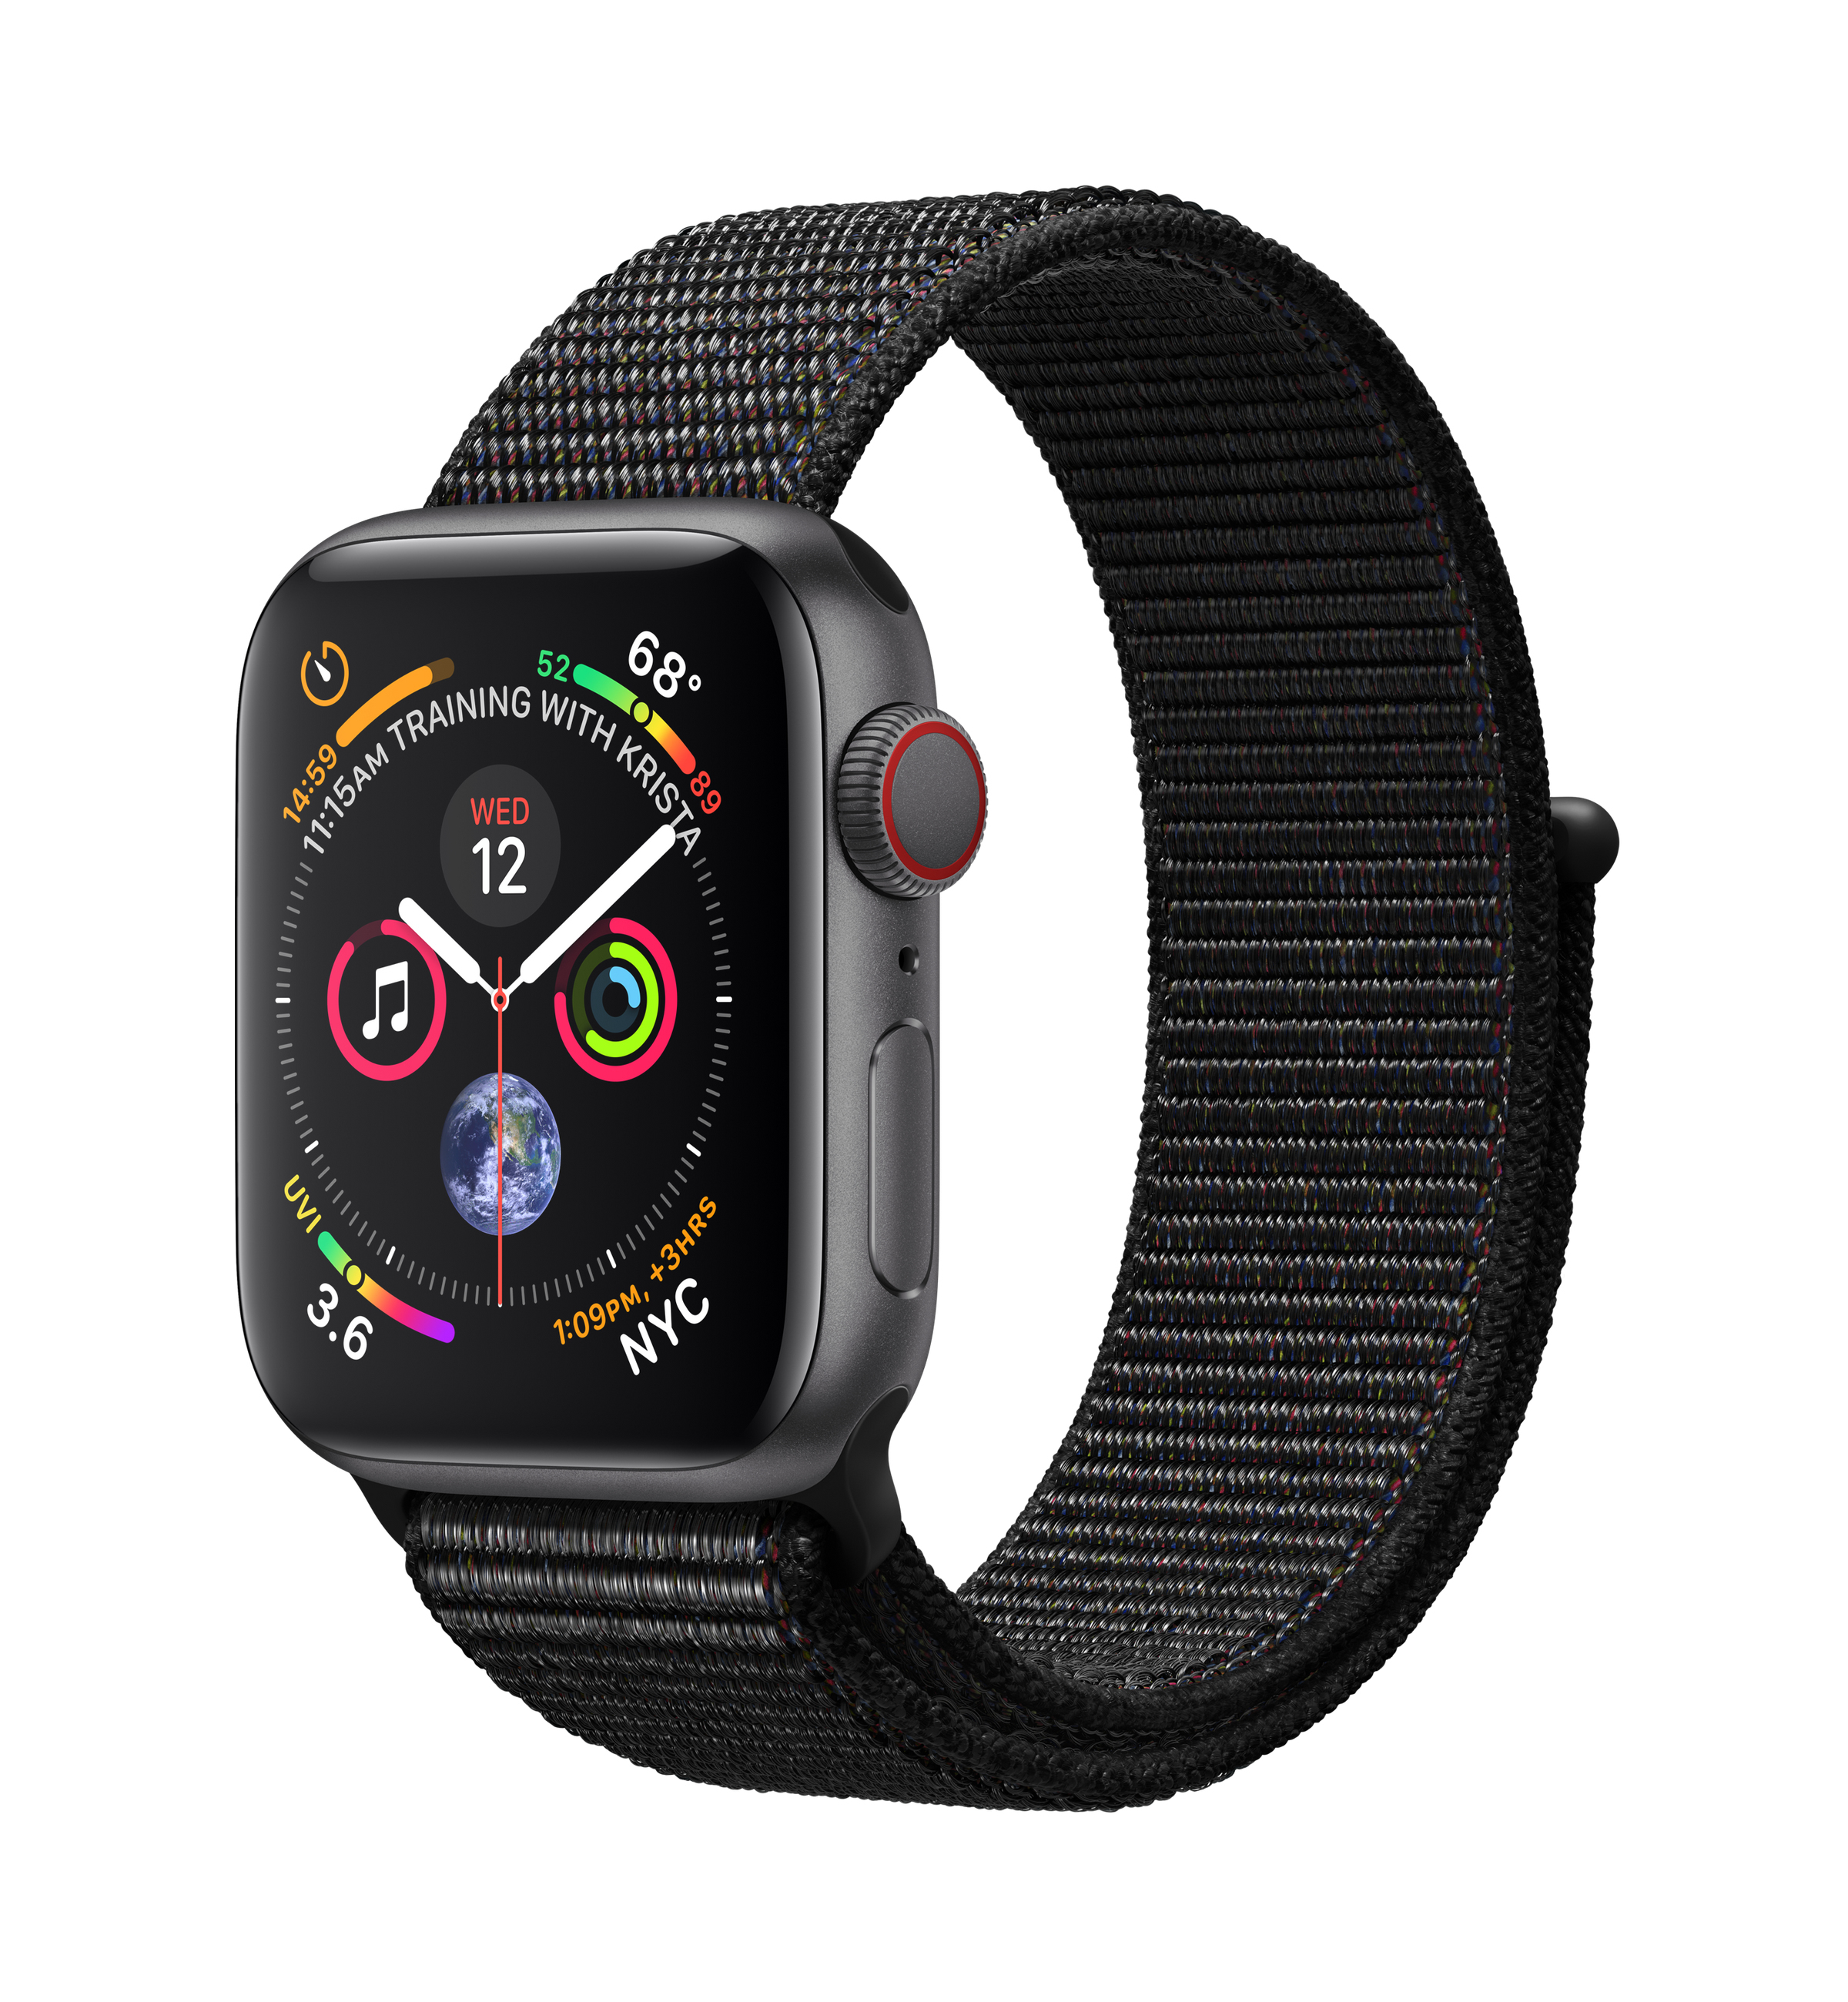 Apple Watch Watch Series 4 für 529,00 Euro